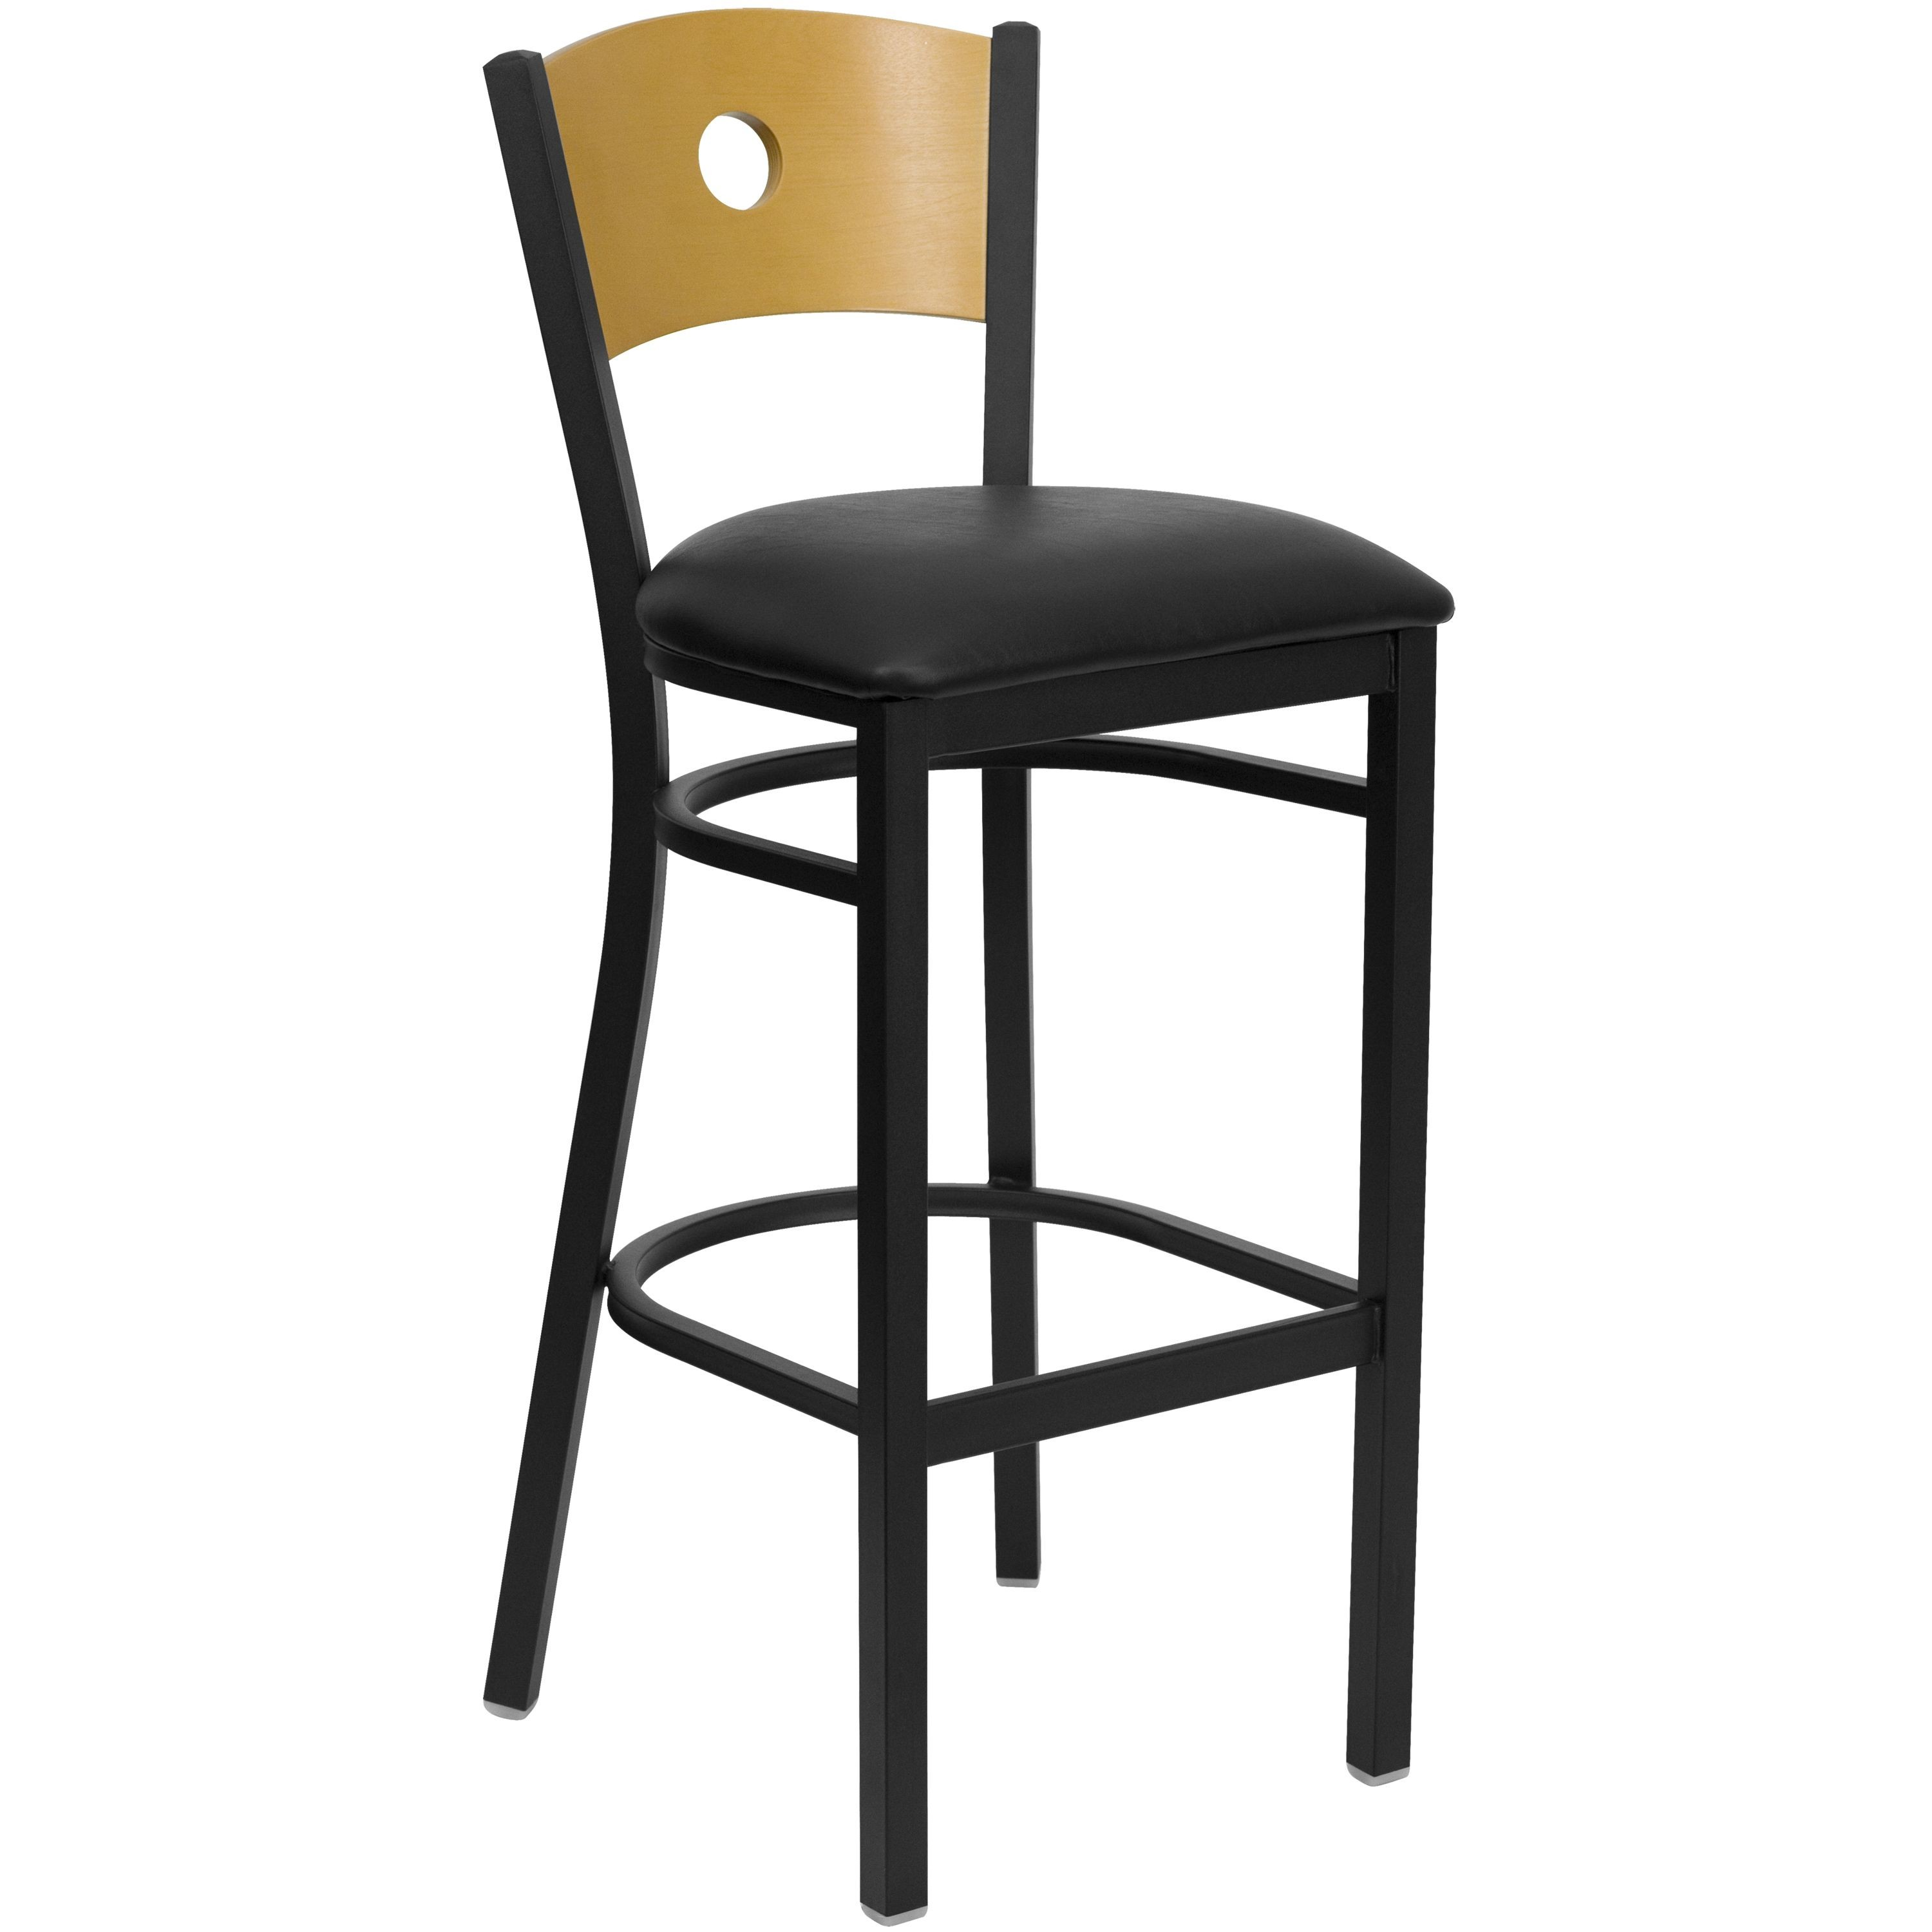 Flash Furniture XU-DG-6F6B-CIR-BAR-BLKV-GG Circle Back Black Metal Barstool - Natural Wood Back, Black Vinyl Seat